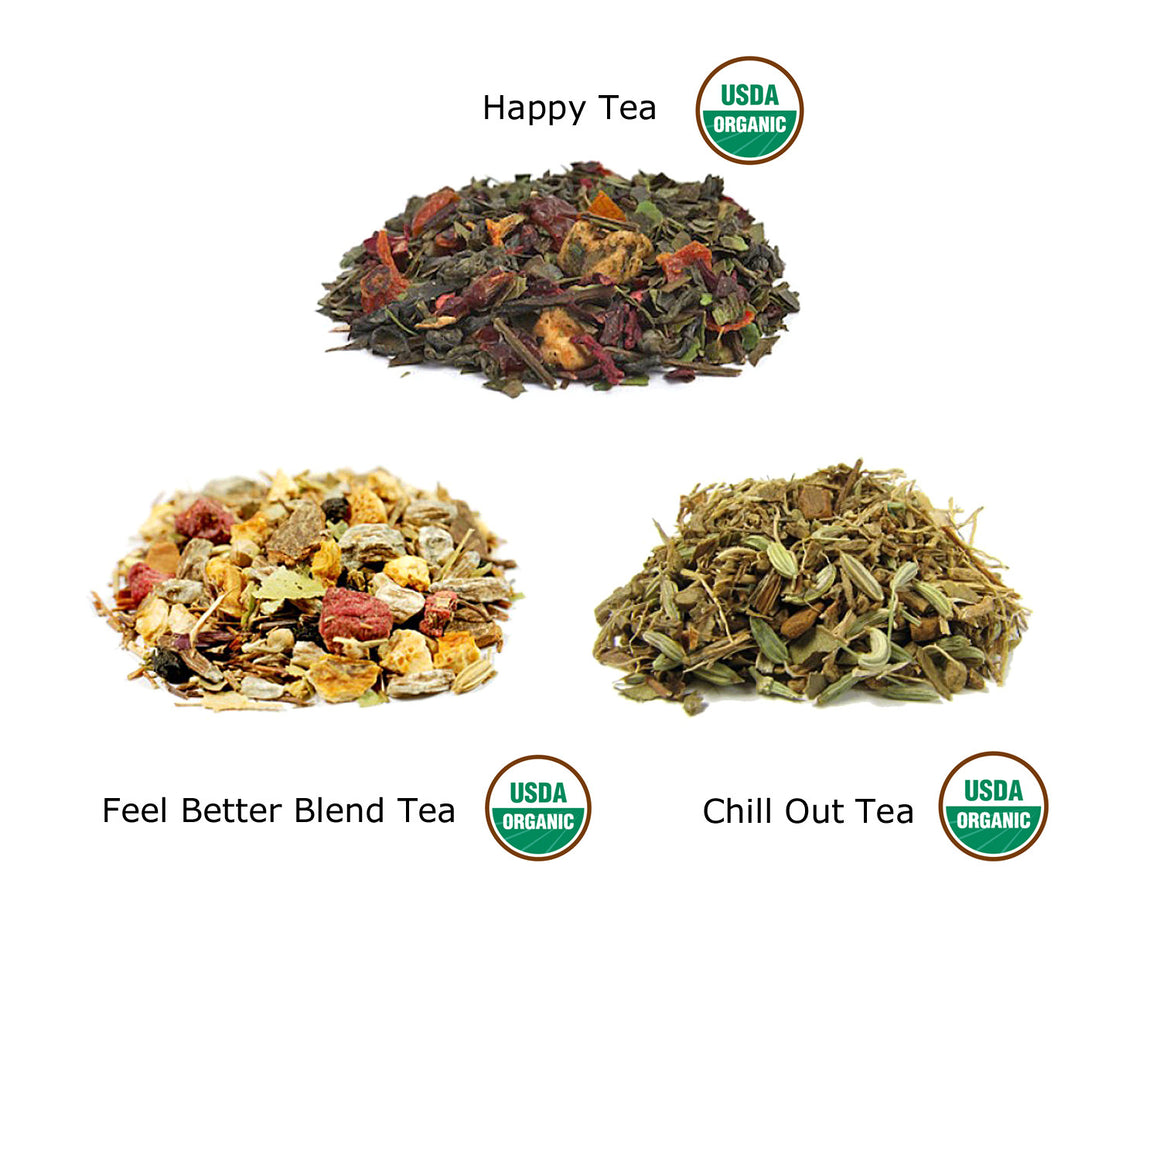 Happy, Feel Better and Chill Out Tea Gift